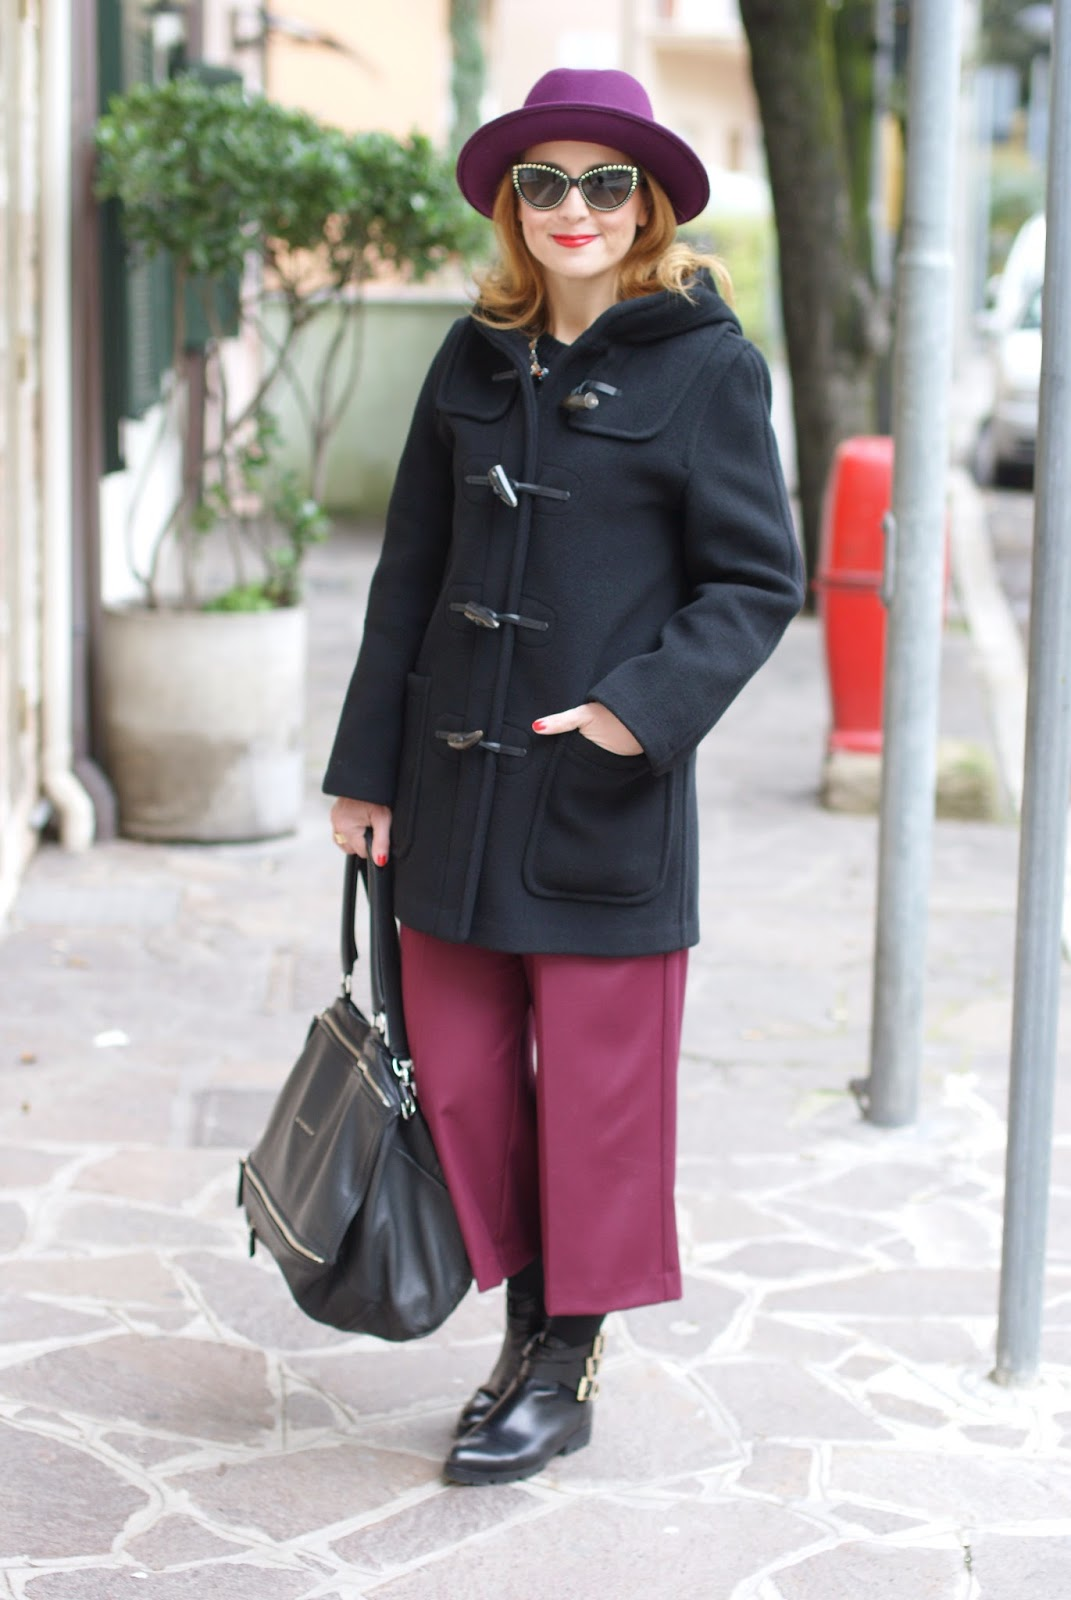 Gloverall duffle coat, Ribbed knit sweater, Givenchy Pandora bag, Ecua-Andino hat, Fashion and Cookies, fashion blogger